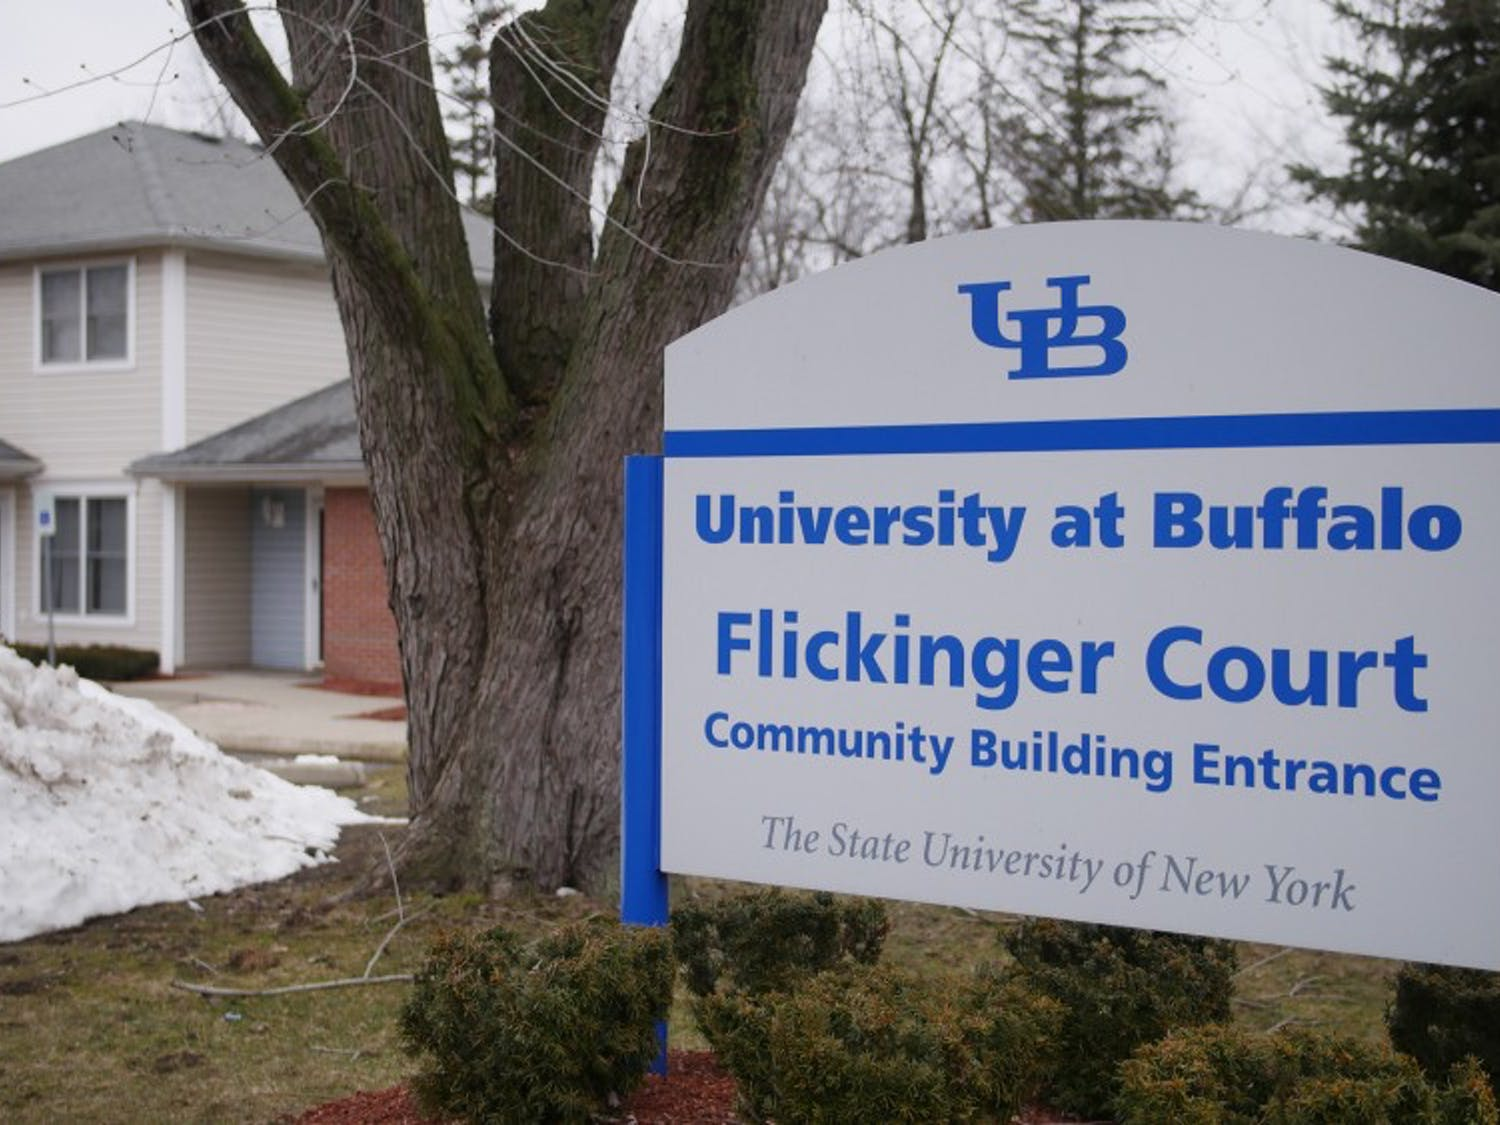 Flickinger Court, located across the street from North Campus off Chestnut Ridge Road, is one of two on-campus apartment options for graduate students. On-campus rents have risen in recent years, and many graduate students are opting to live off-campus as a result.